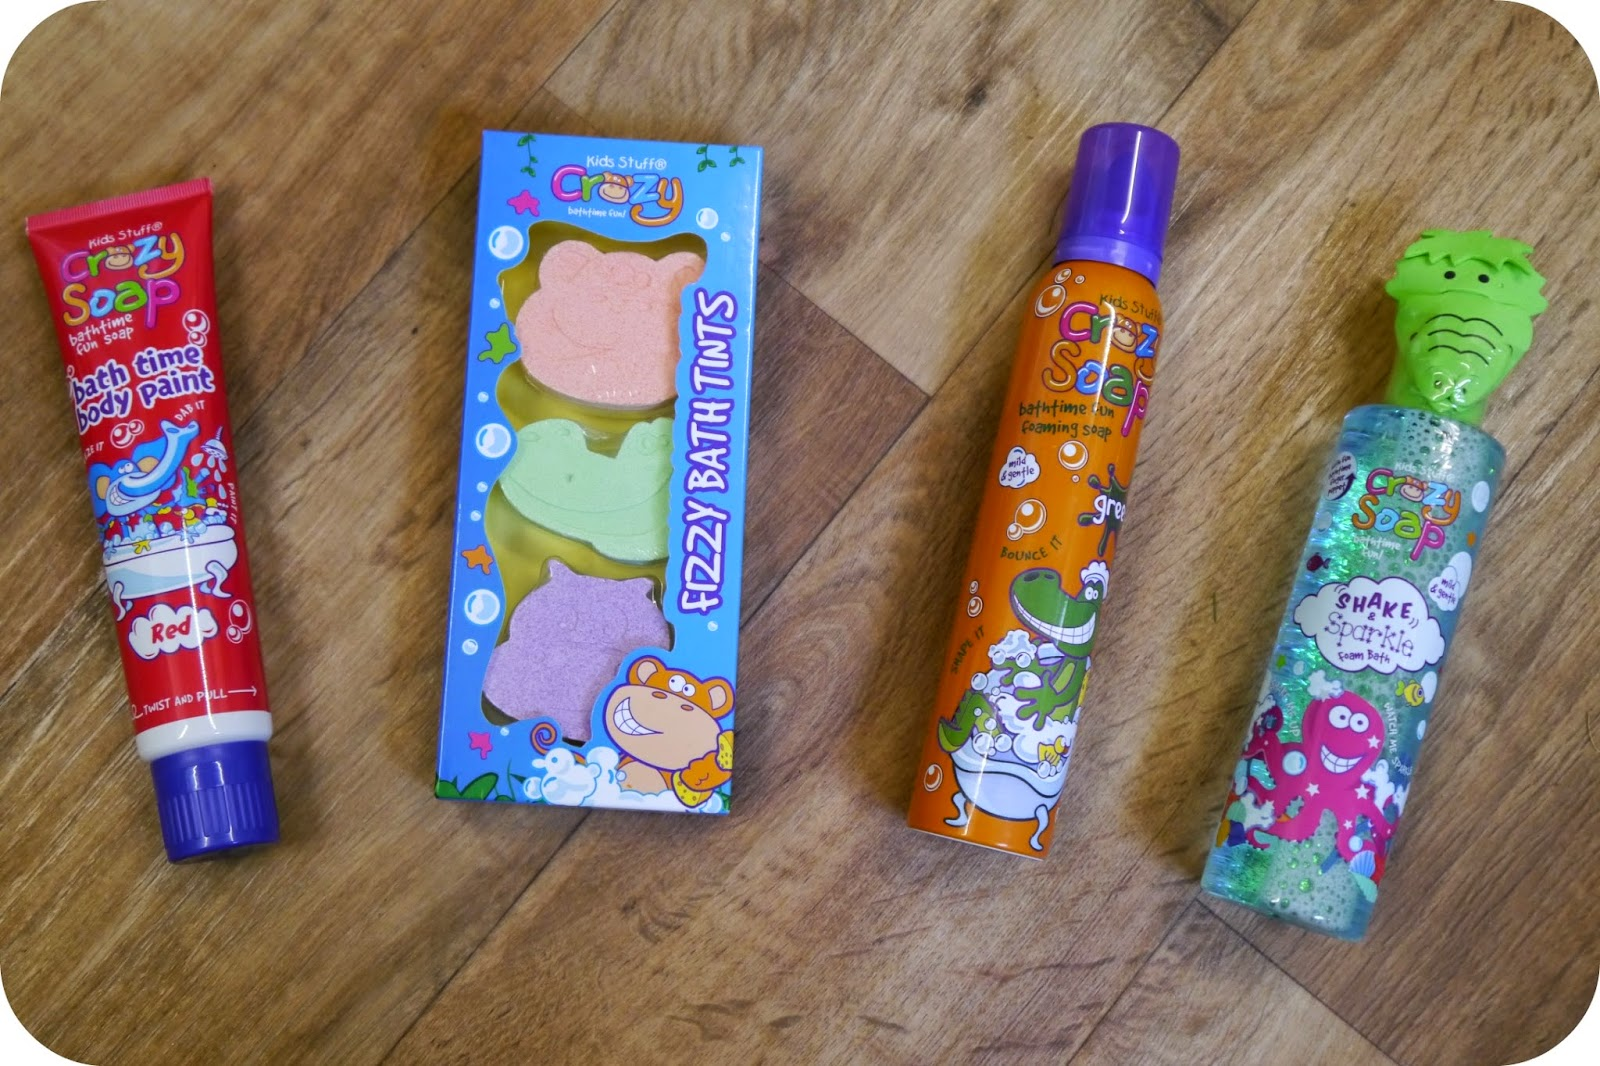 Honest Mummy Reviews : Review - Kids Stuff Crazy Soap Products